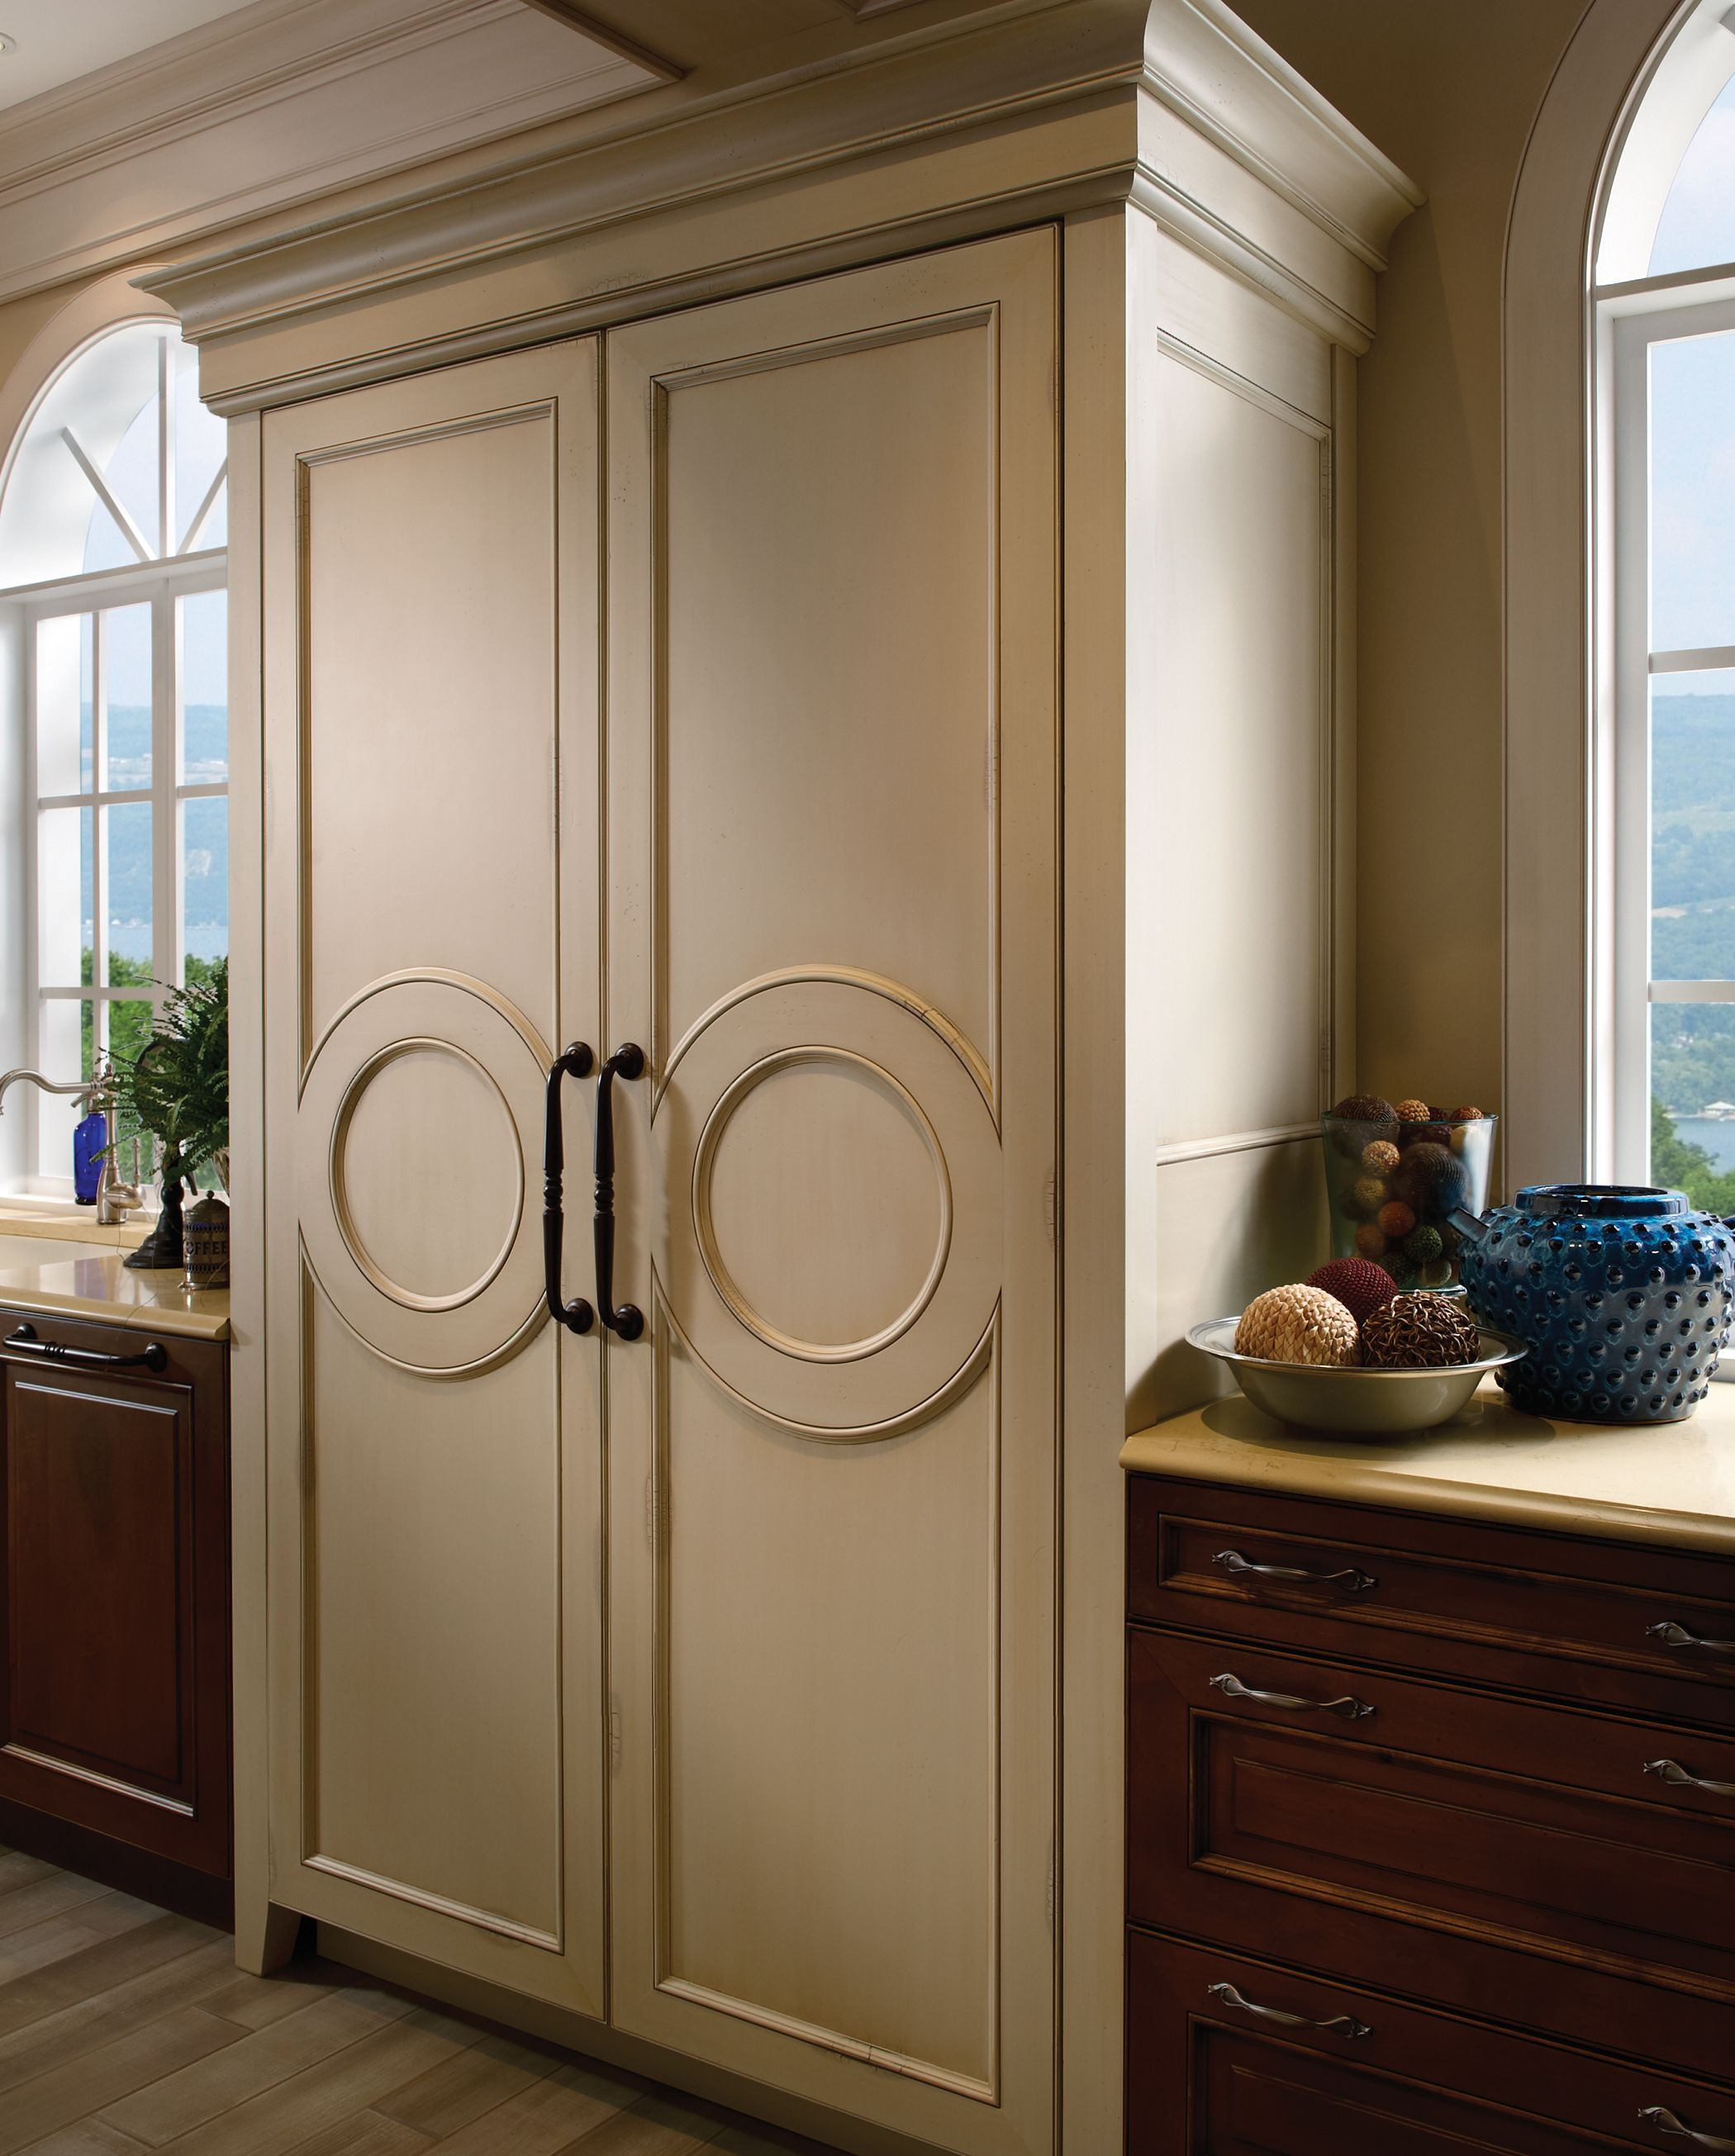 Traditional Refrigerator Panel With Medallion Inserts